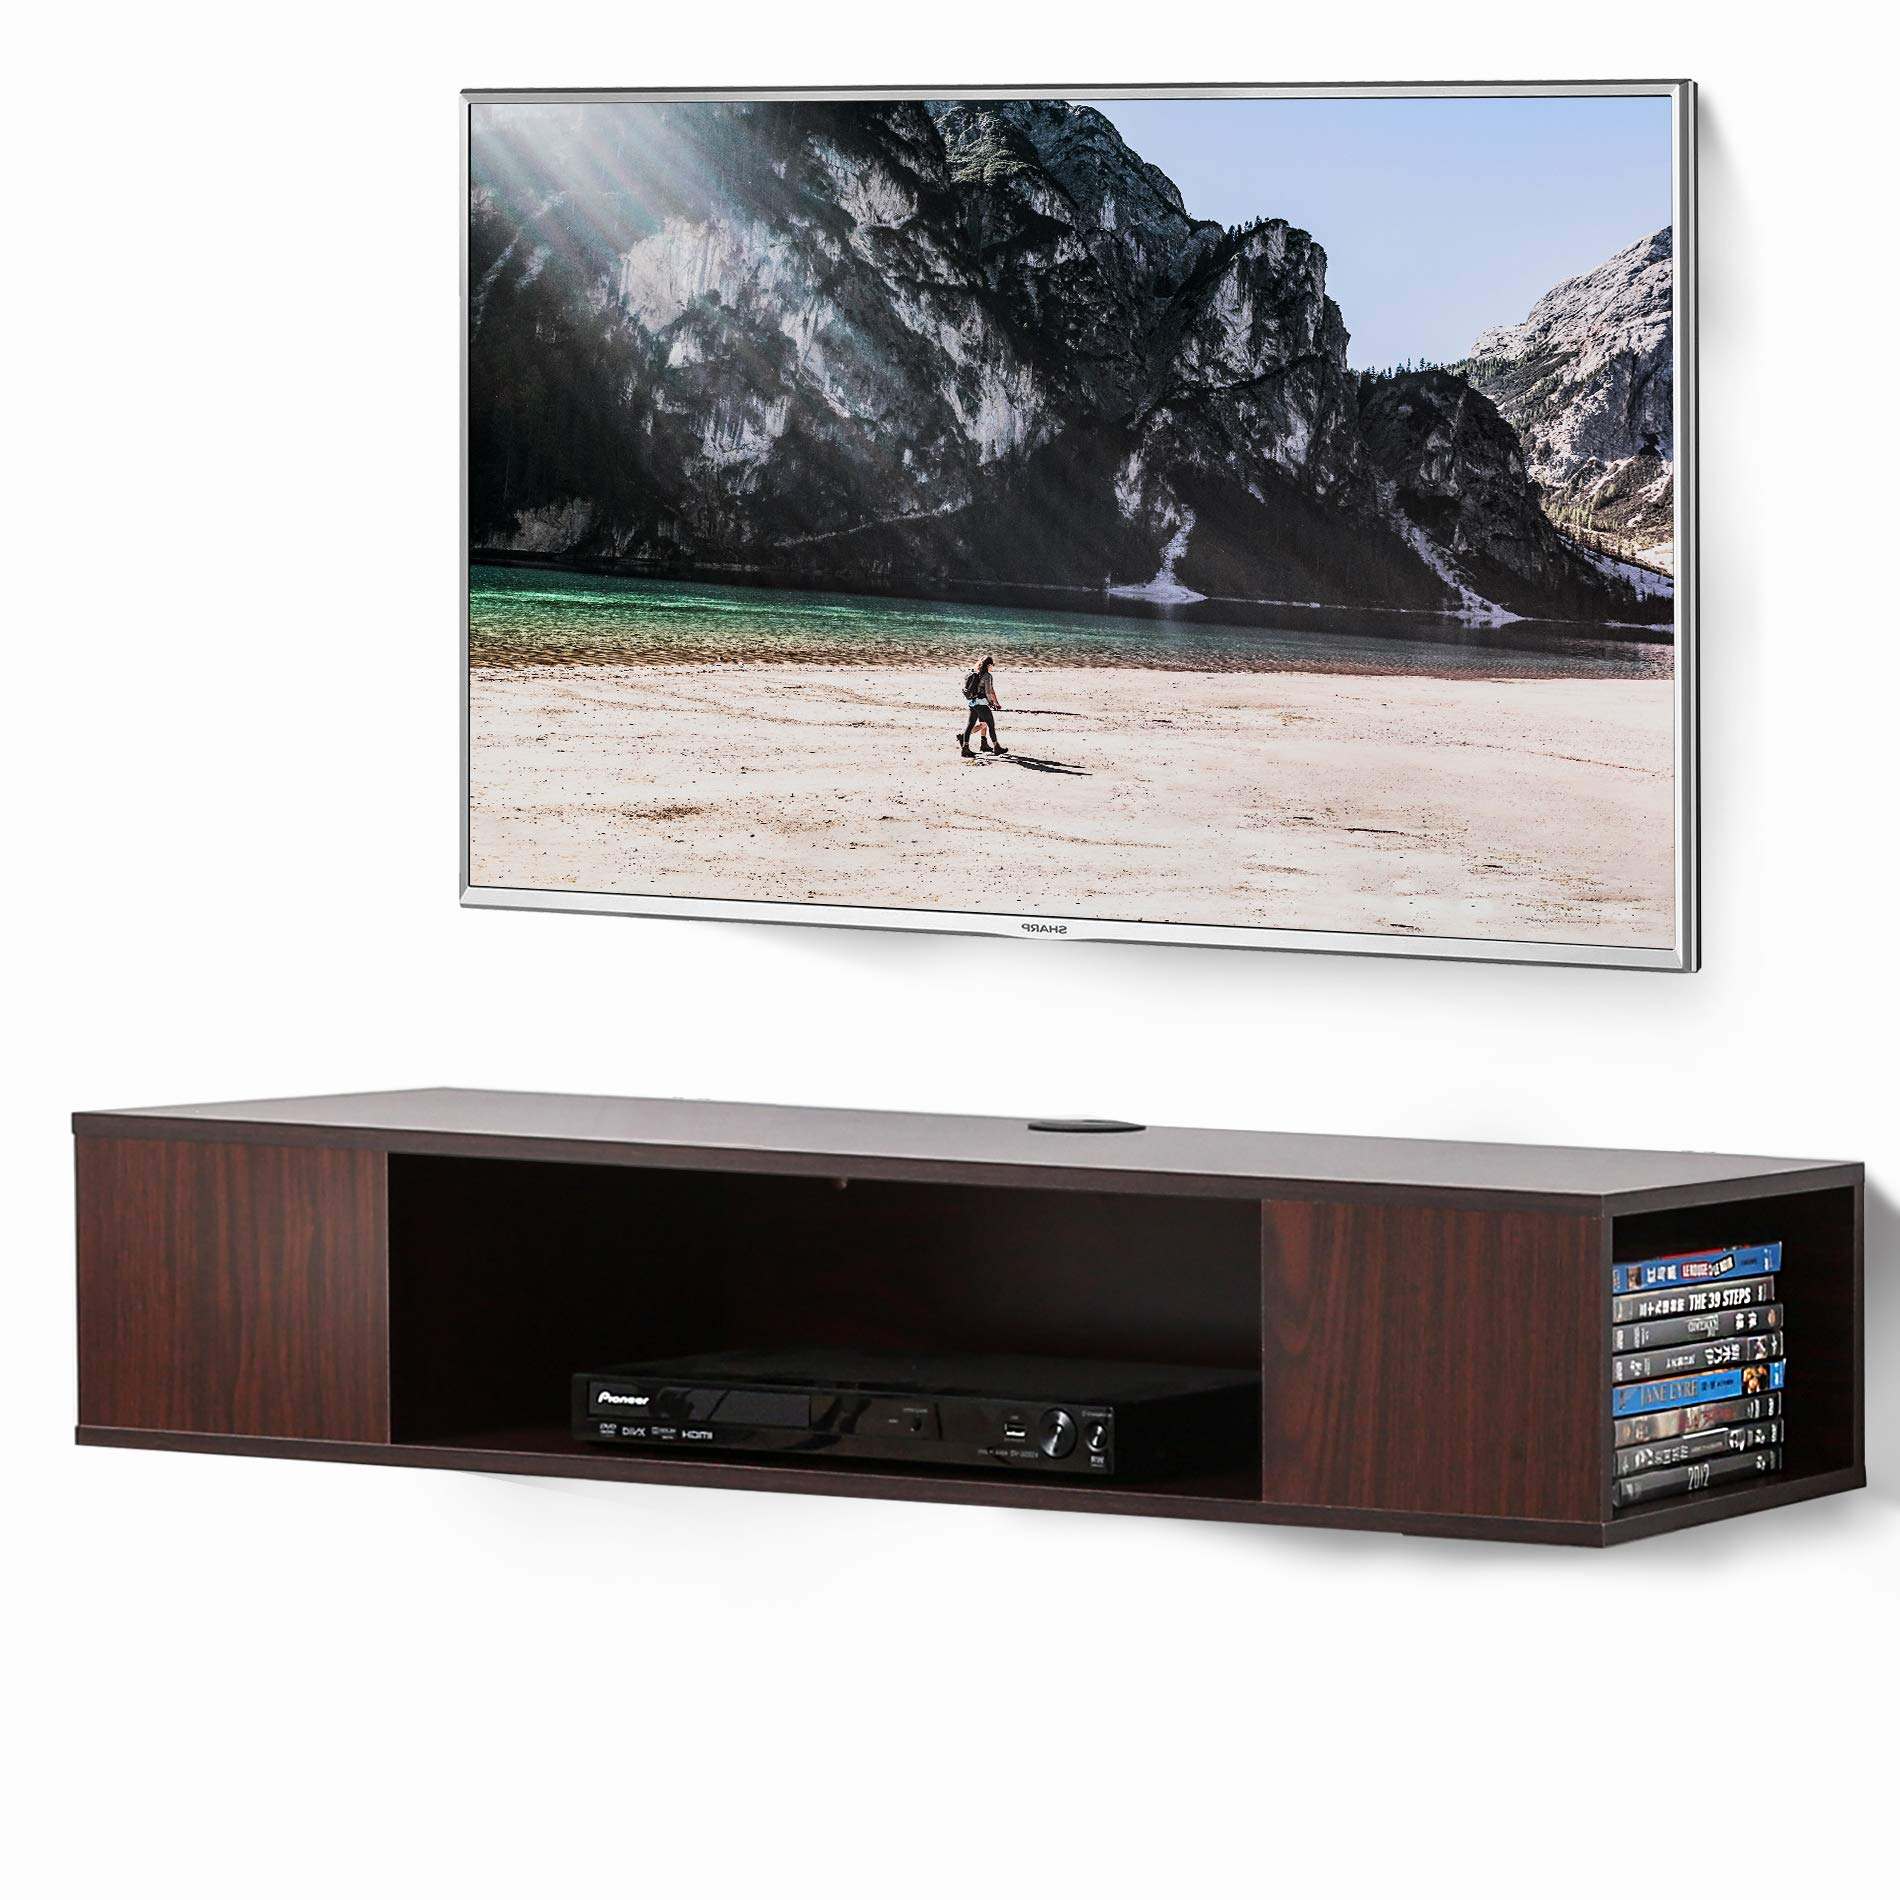 FITUEYES Walnut Floating TV Stand Component Shelf Wall Mounted Media Console DS210005WW by FITUEYES